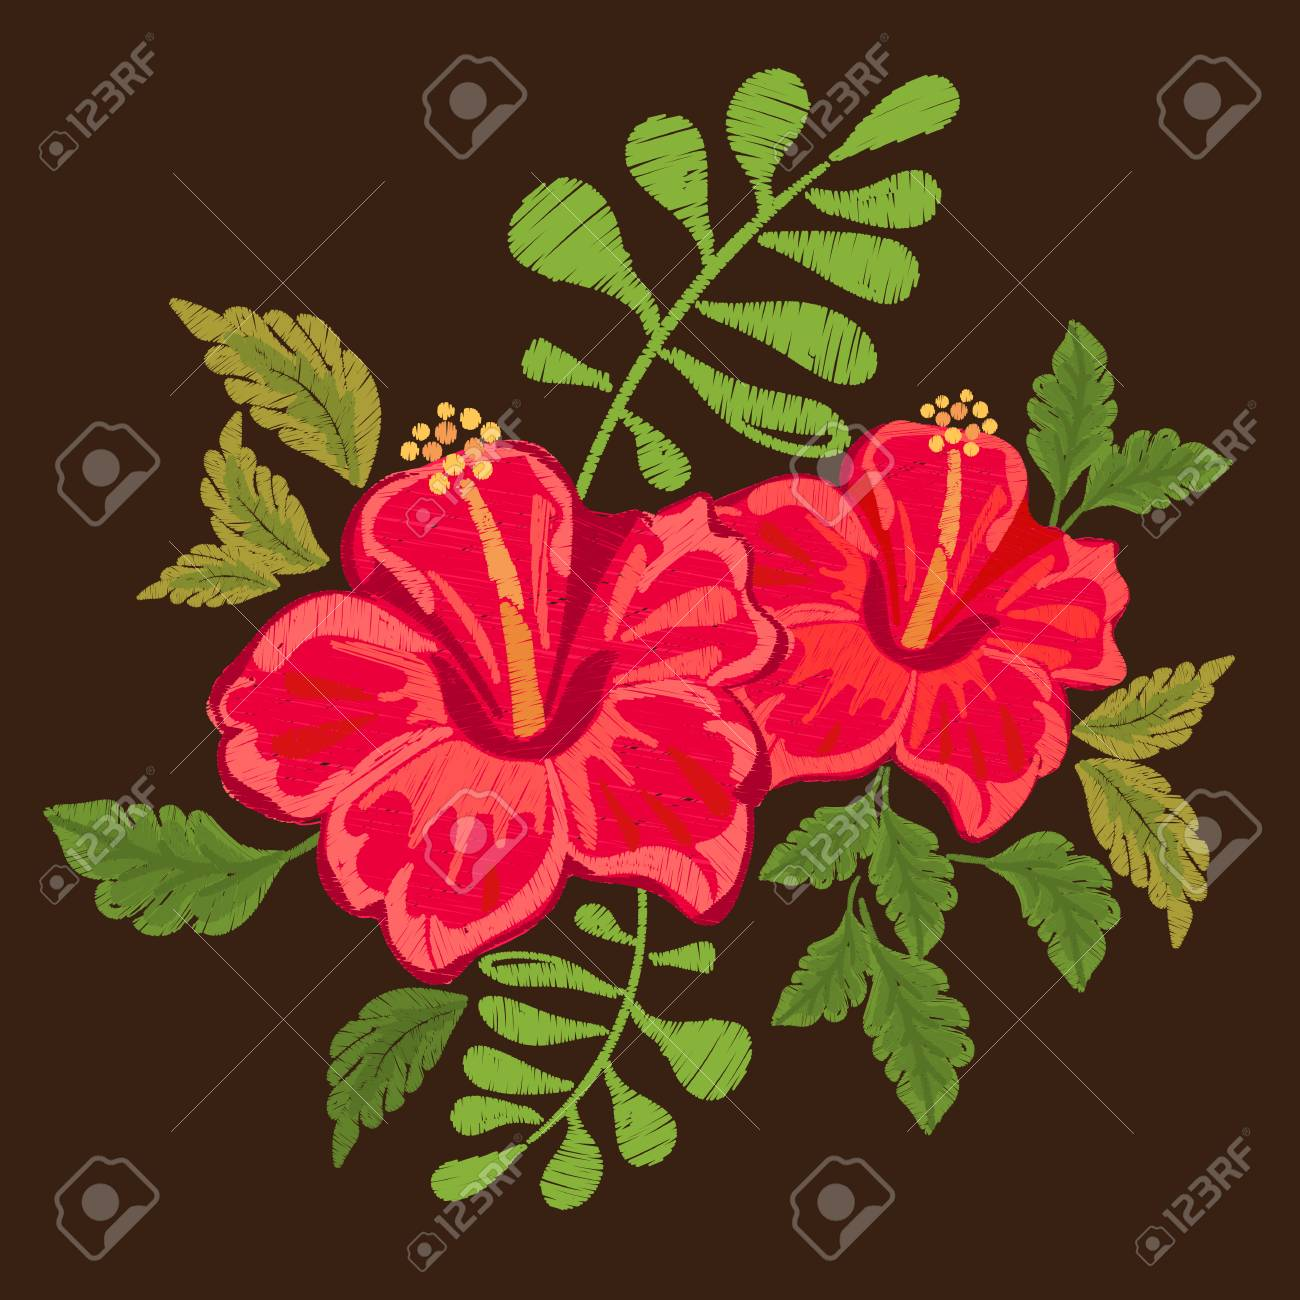 Hawaii symbol hibiscus floral embroidered pattern for fabric hawaii symbol hibiscus floral embroidered pattern for fabric stock vector 86085010 izmirmasajfo